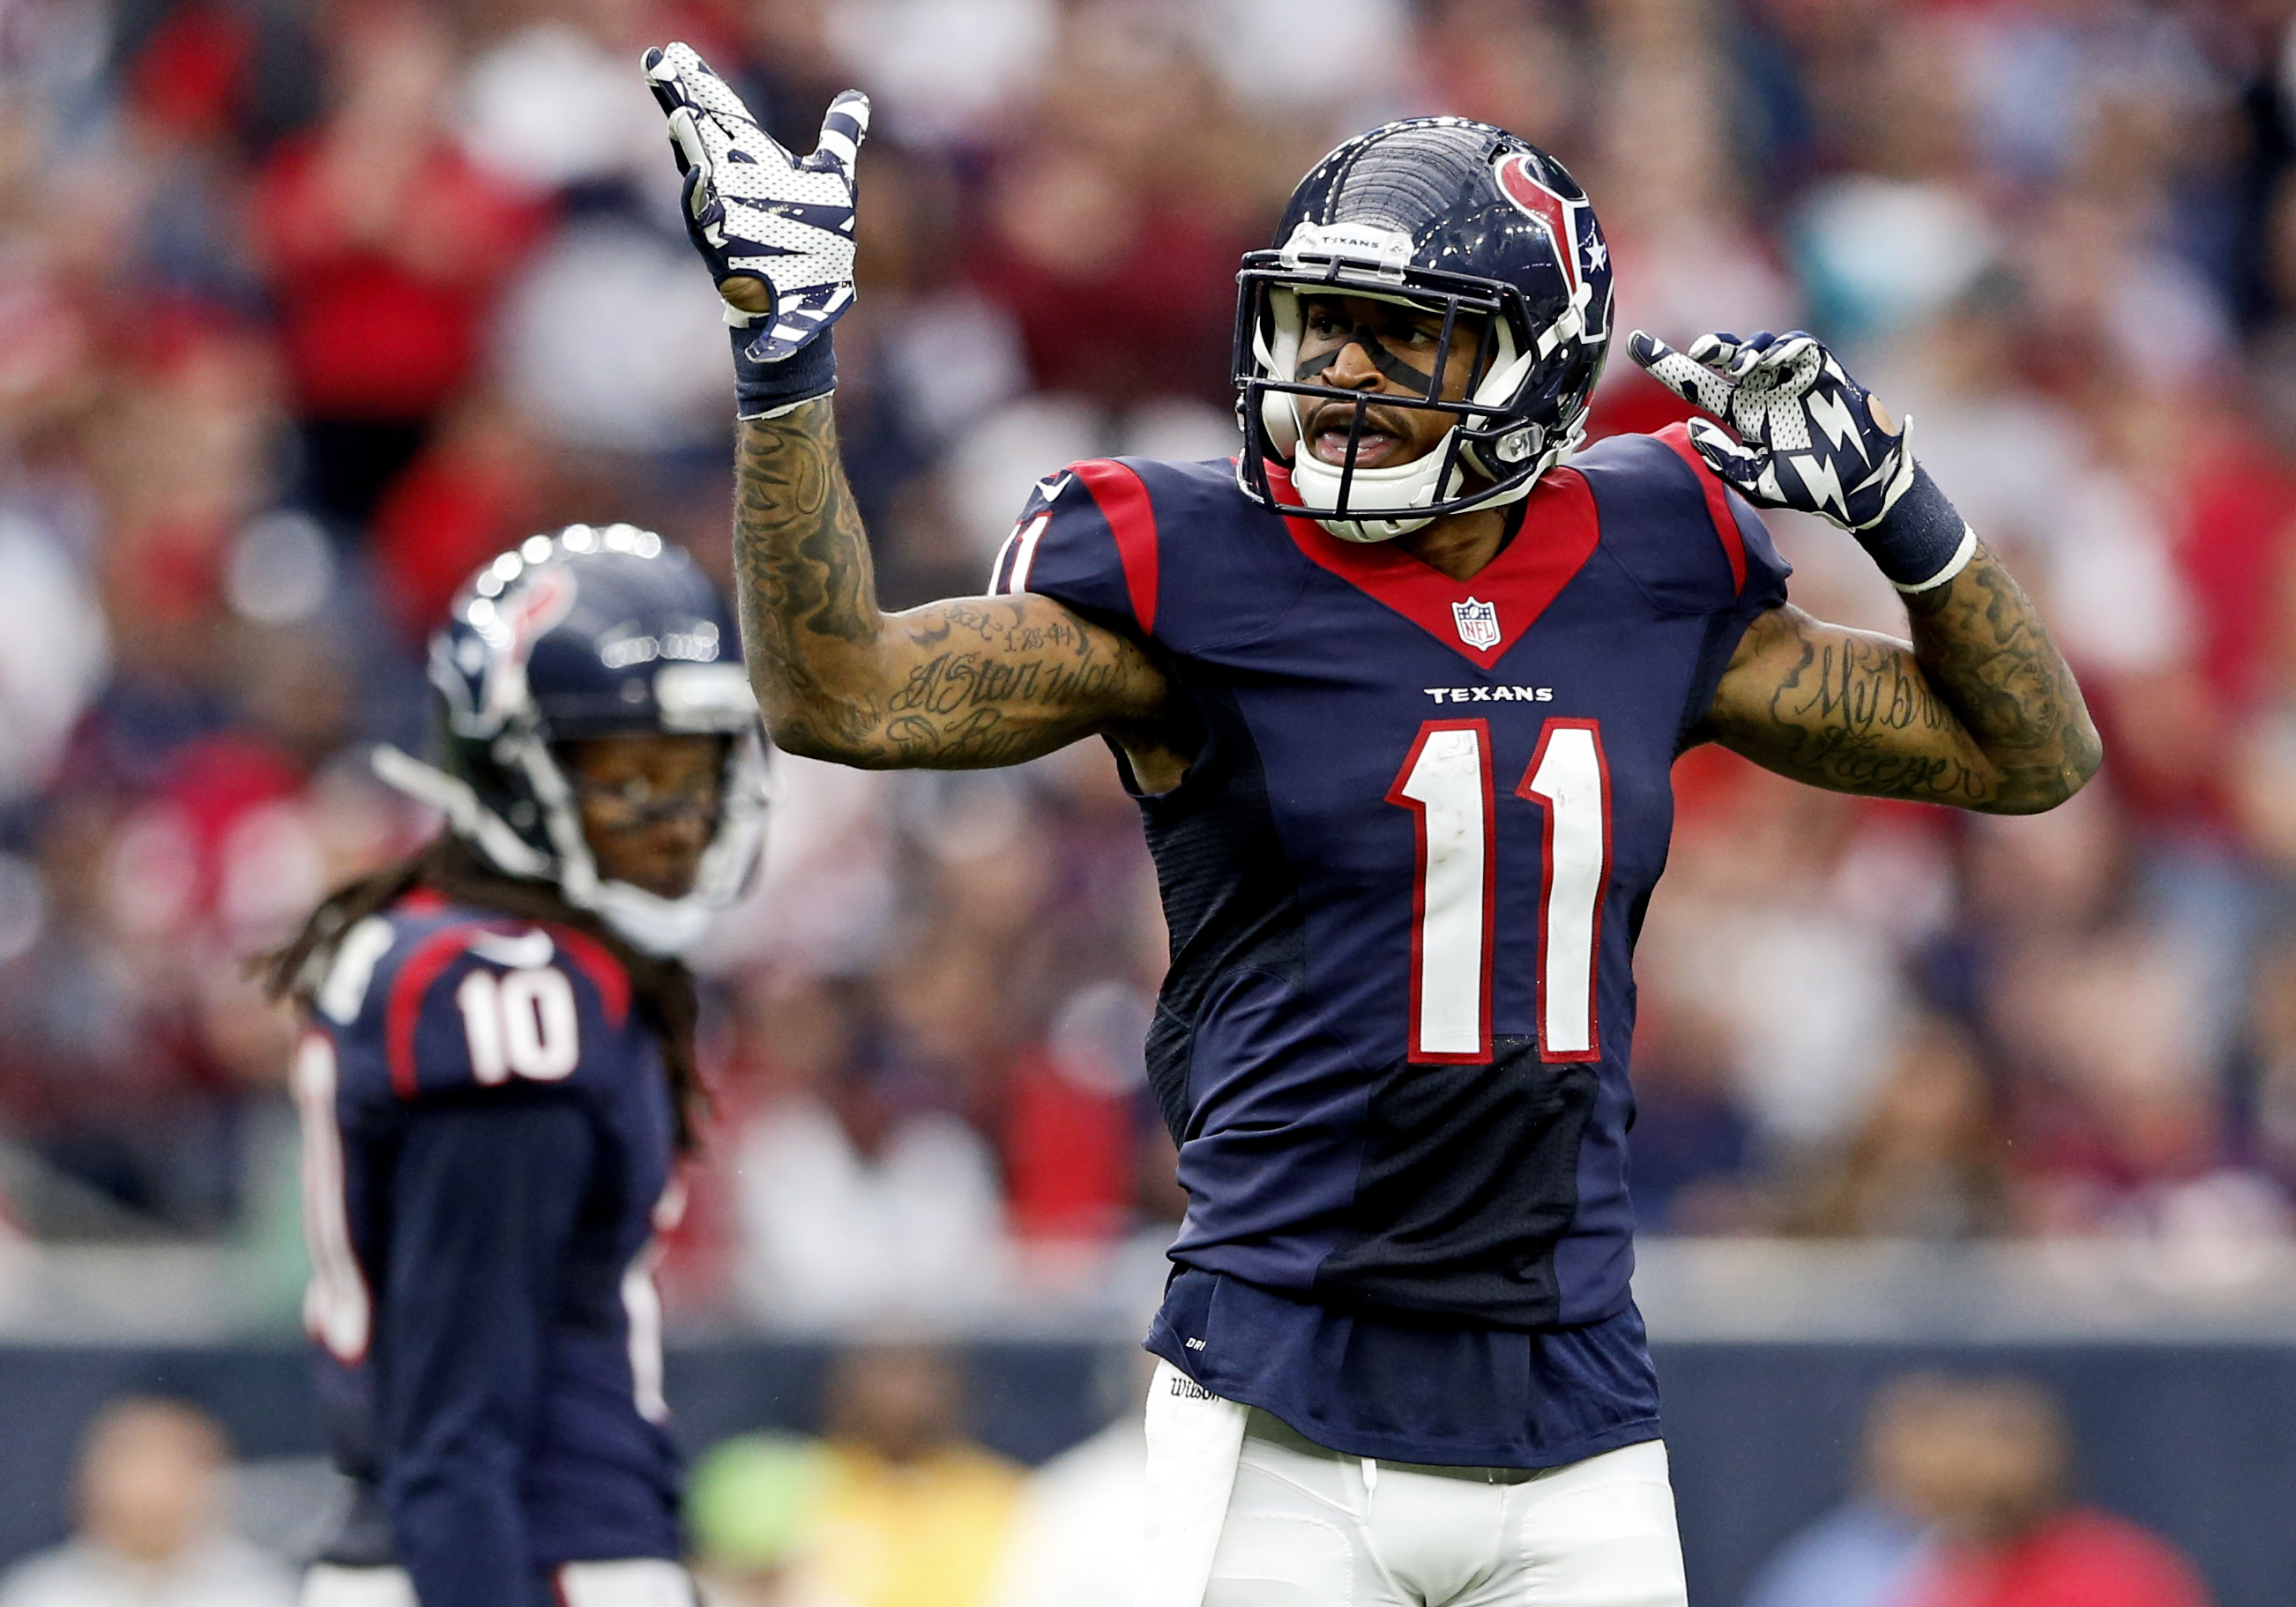 Jaelen Strong celebrates, something he will be doing much more often this year.